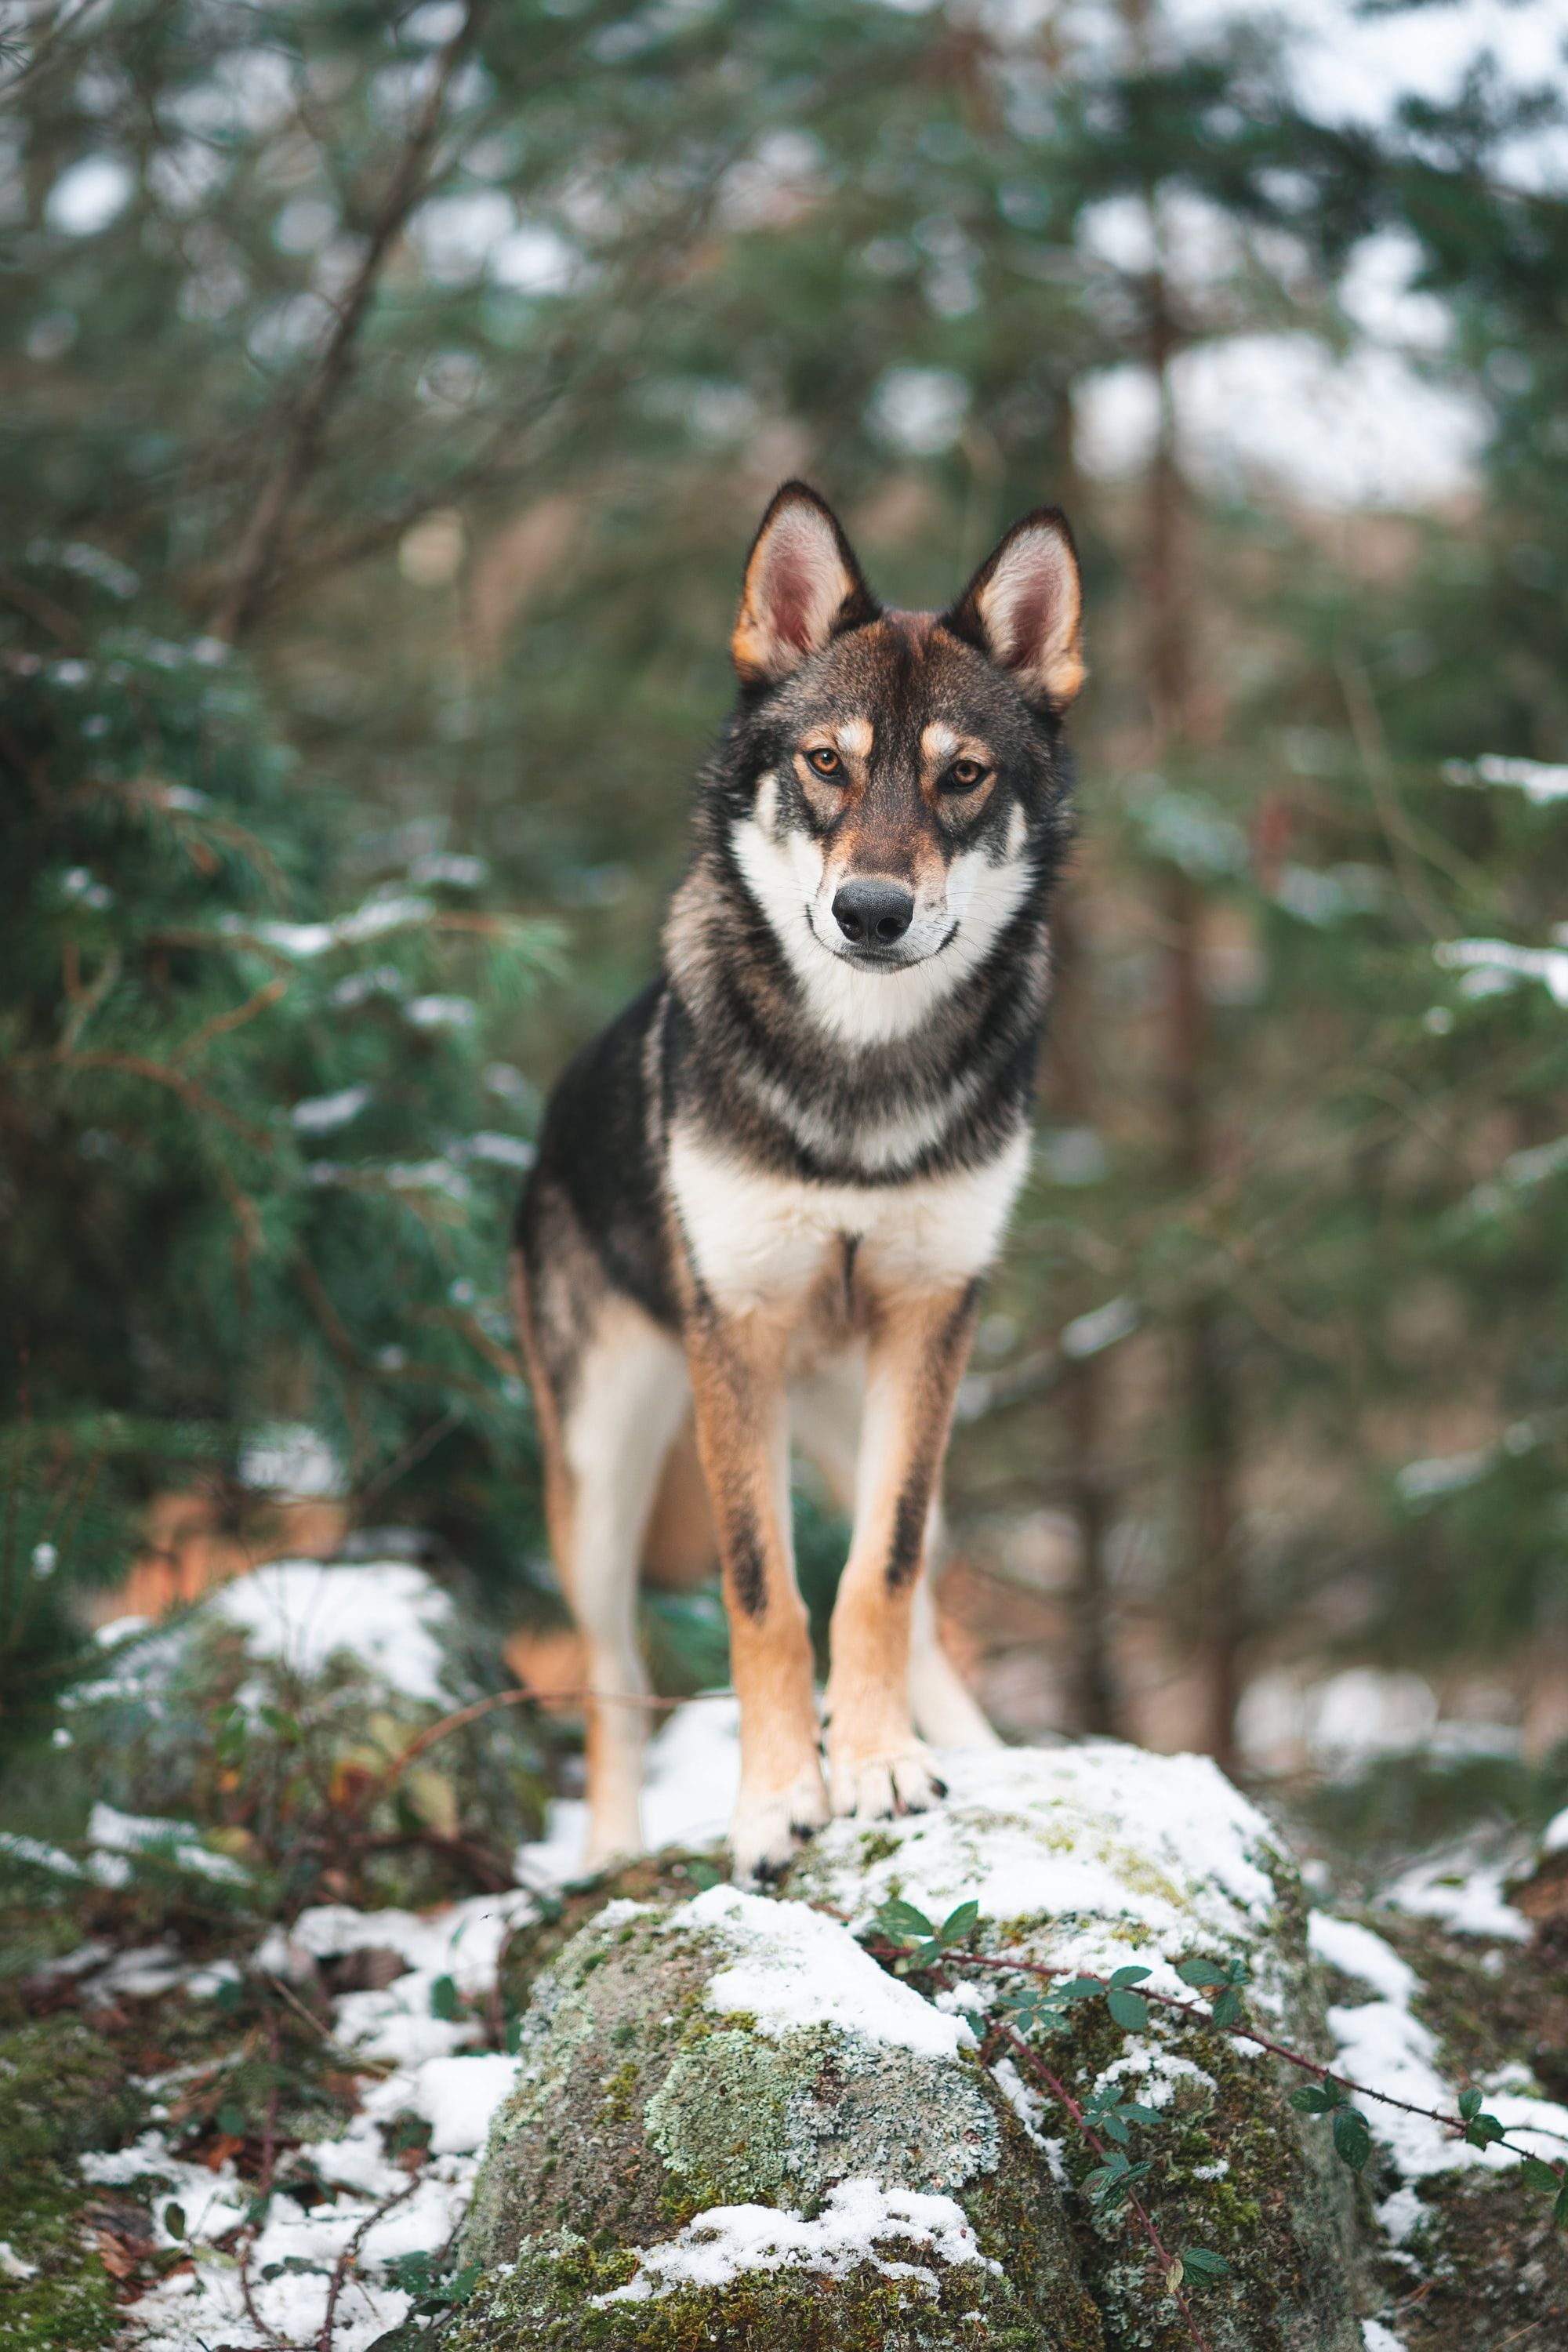 Can Dogs Understand Wolves & Coyotes?